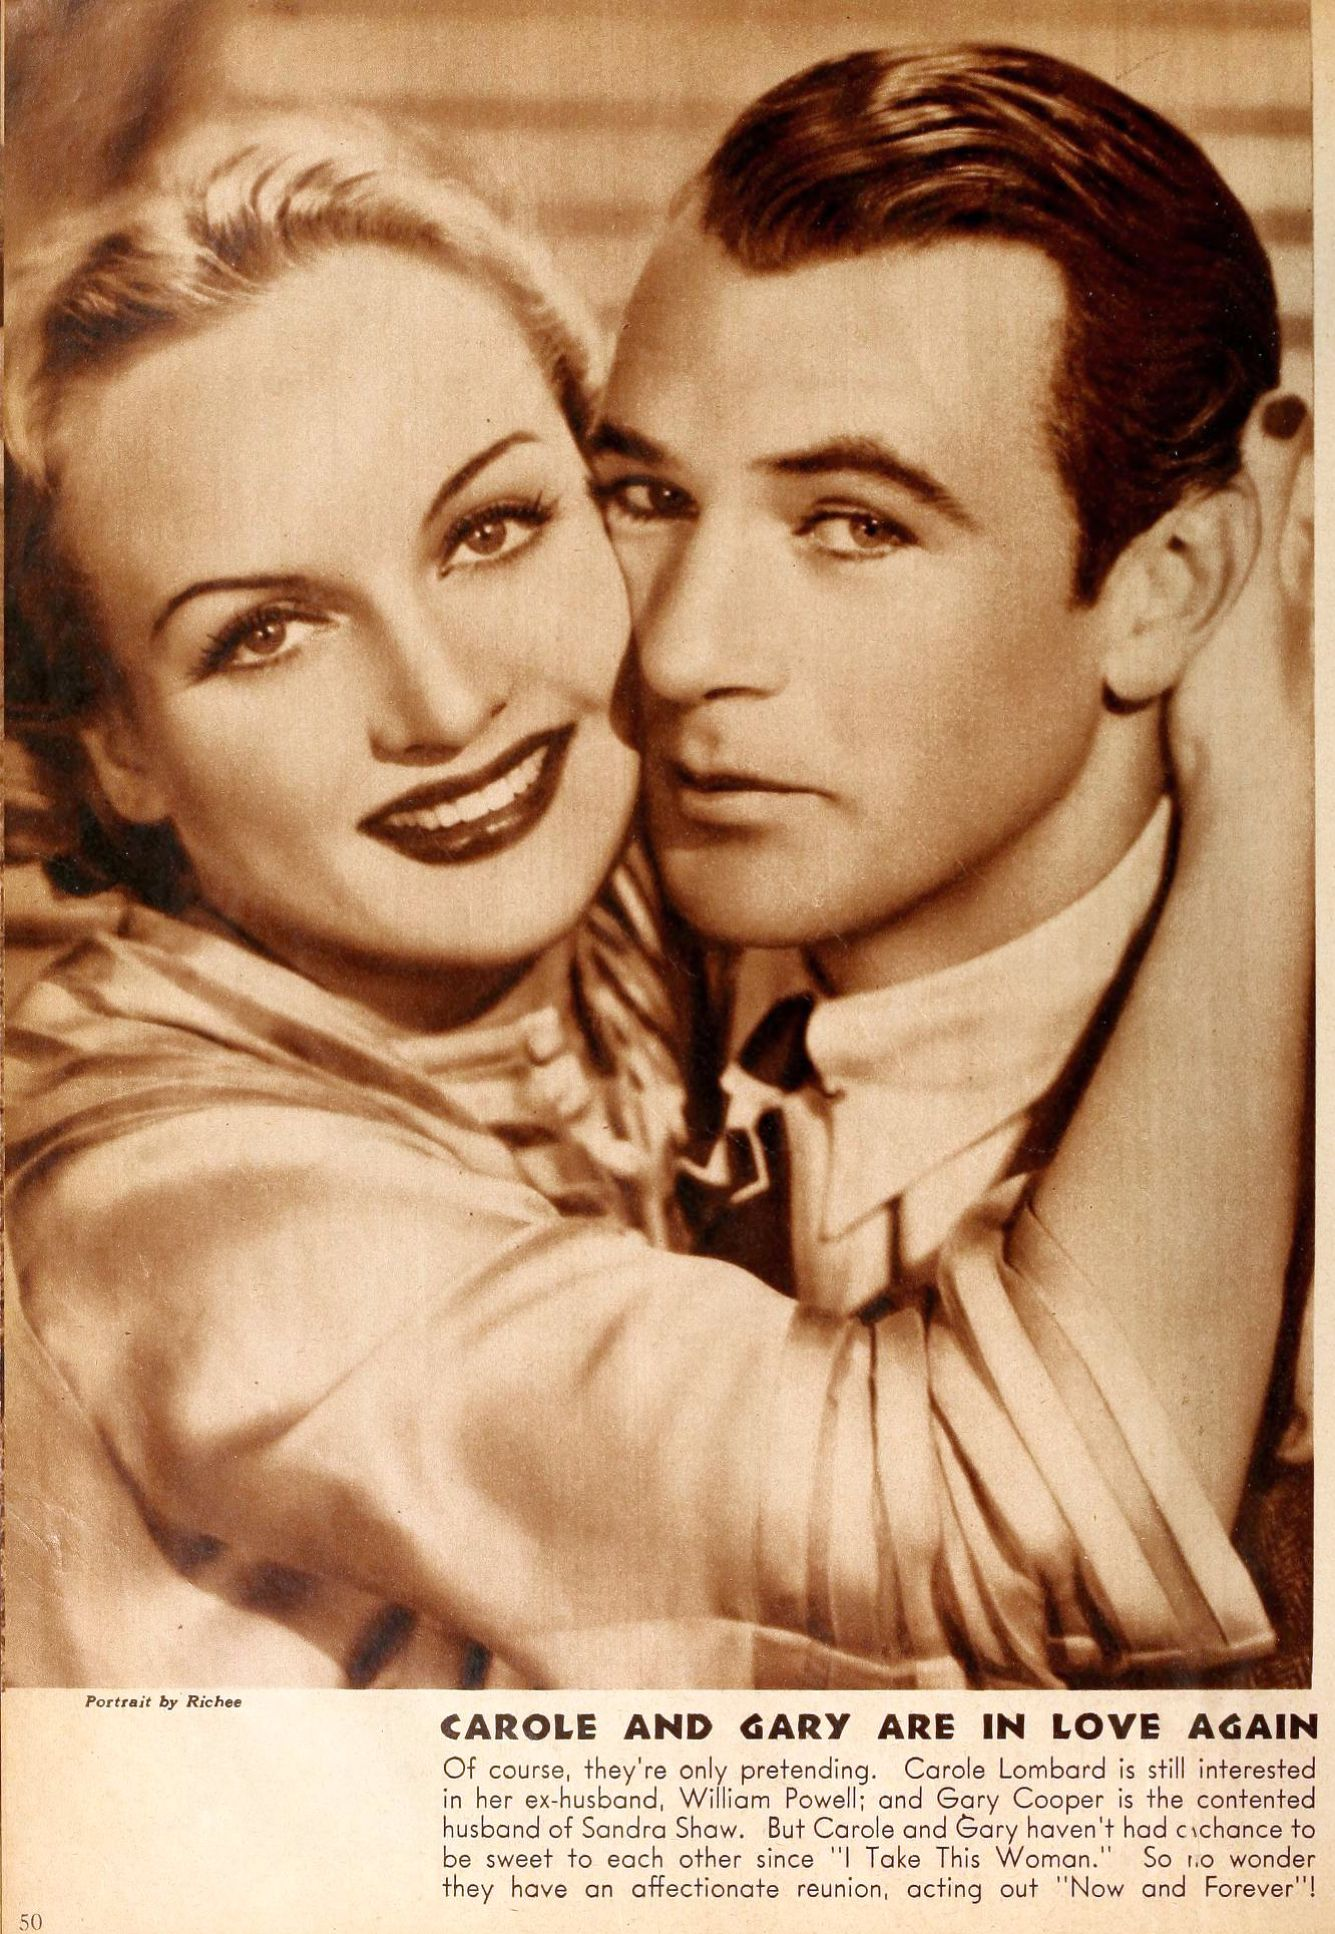 carole lombard now and forever gary cooper motion picture september 1934a